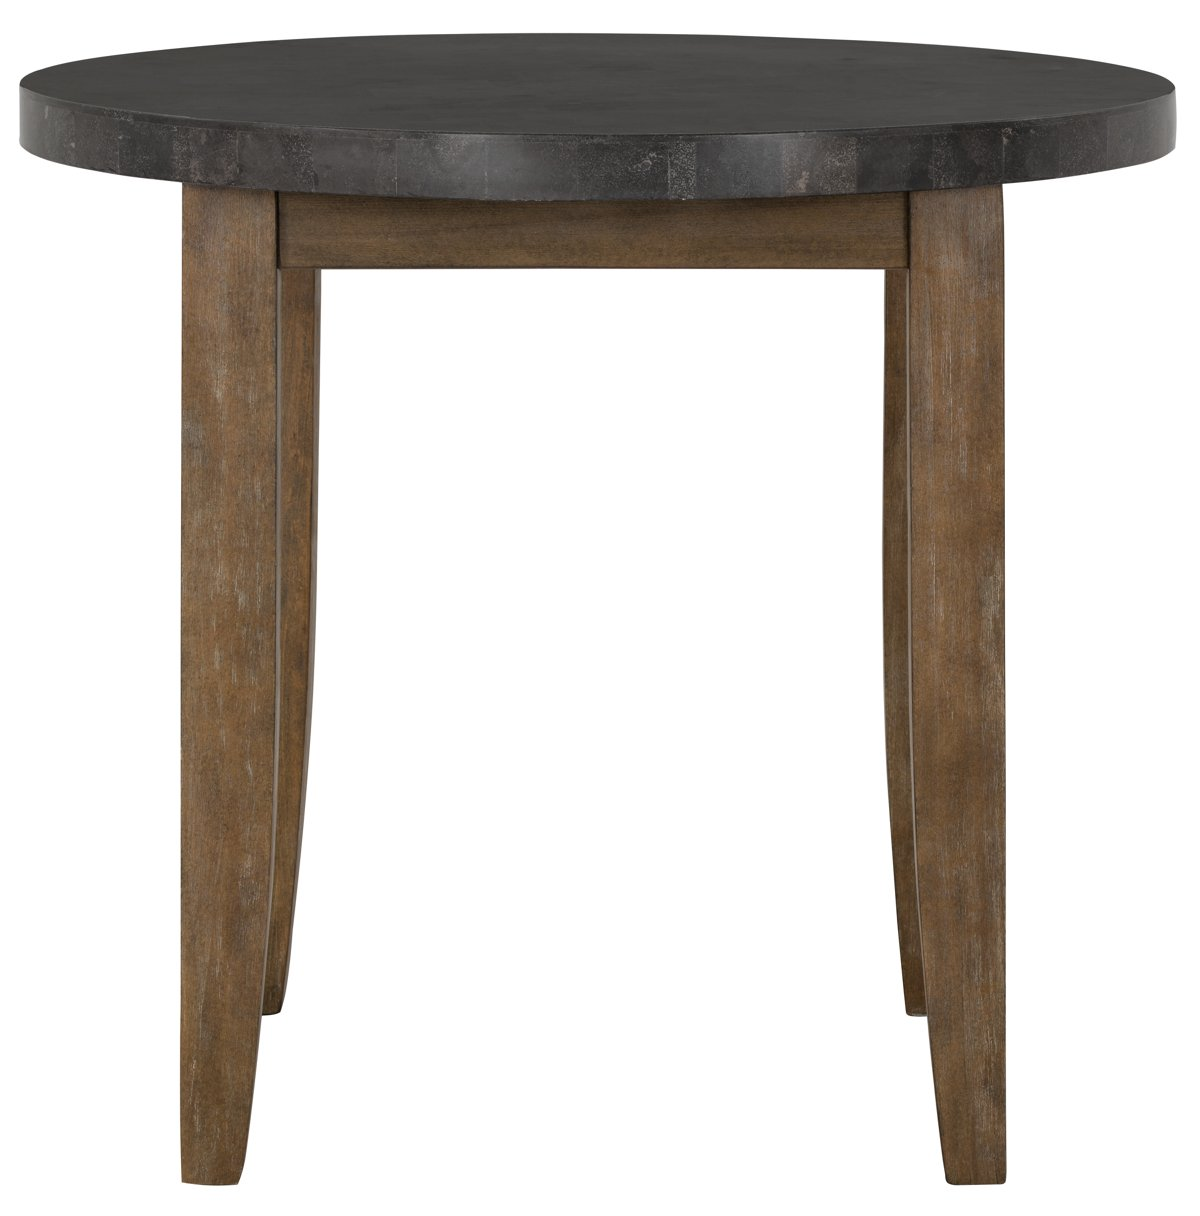 se emmett stone round high table